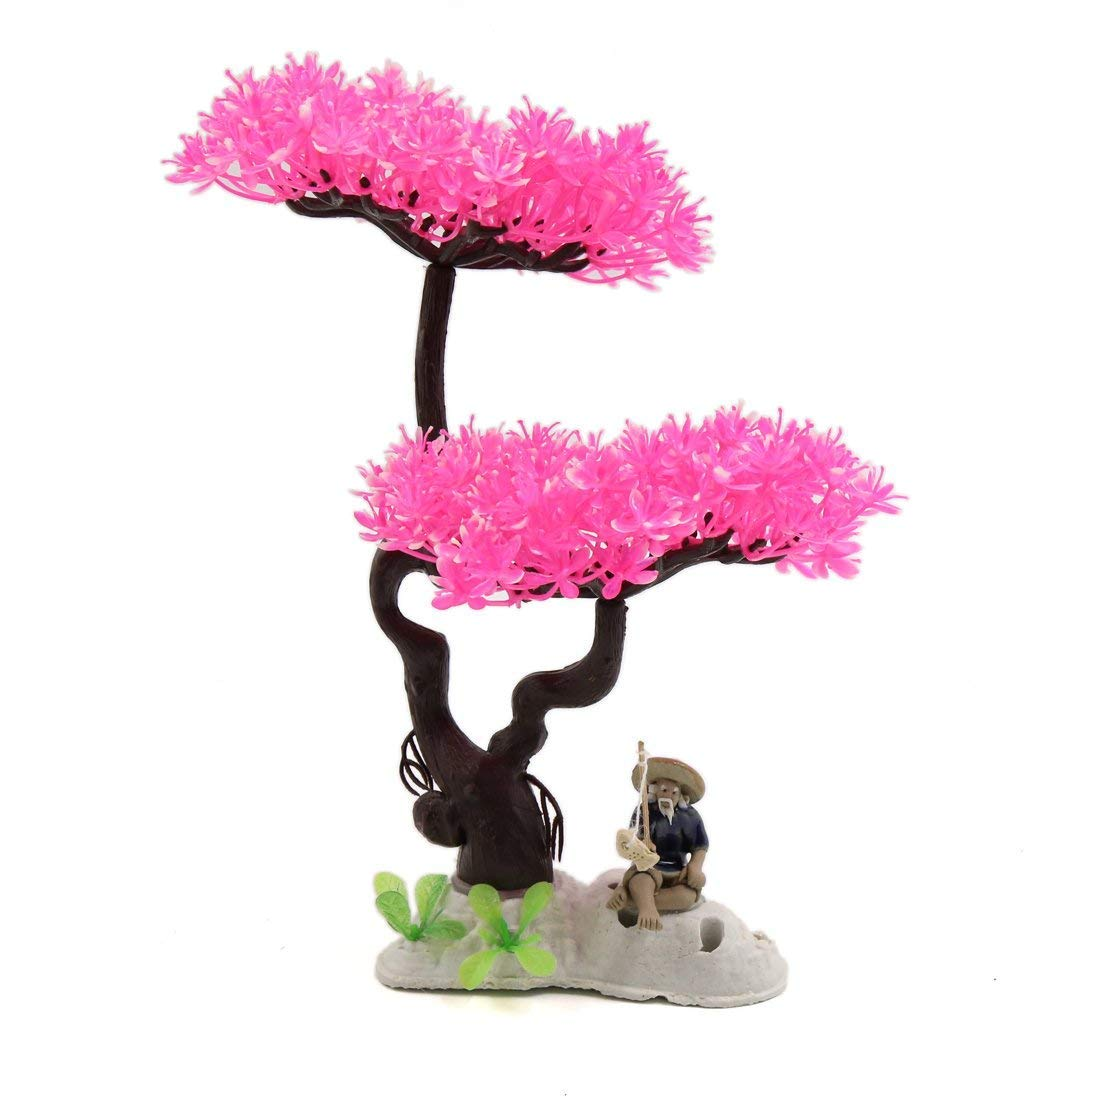 1Pc Pink Plastic Flowers Tree Aquarium Fish Tank Landscape Decor w Ceramic Base